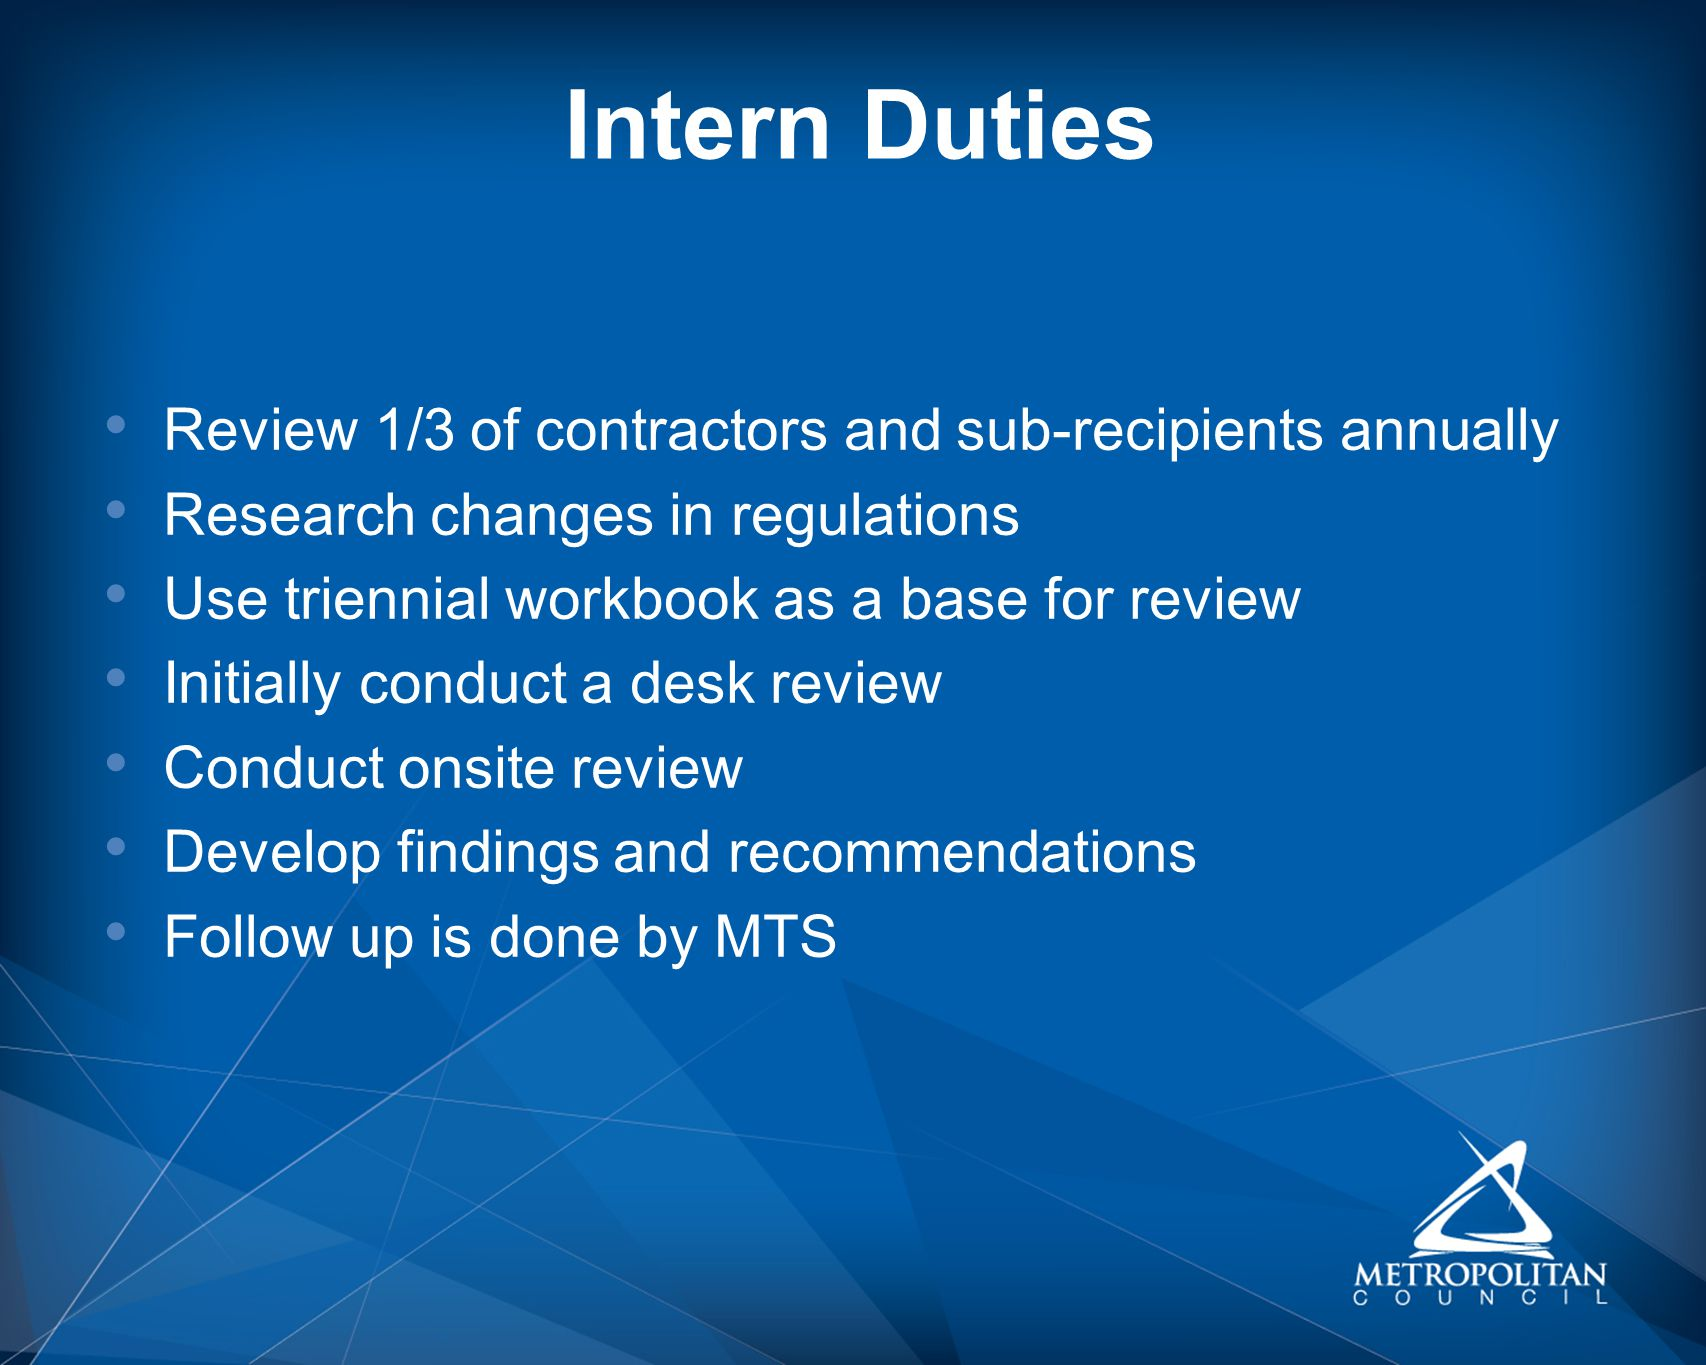 Intern Duties Review 1/3 of contractors and sub-recipients annually Research changes in regulations Use triennial workbook as a base for review Initially conduct a desk review Conduct onsite review Develop findings and recommendations Follow up is done by MTS